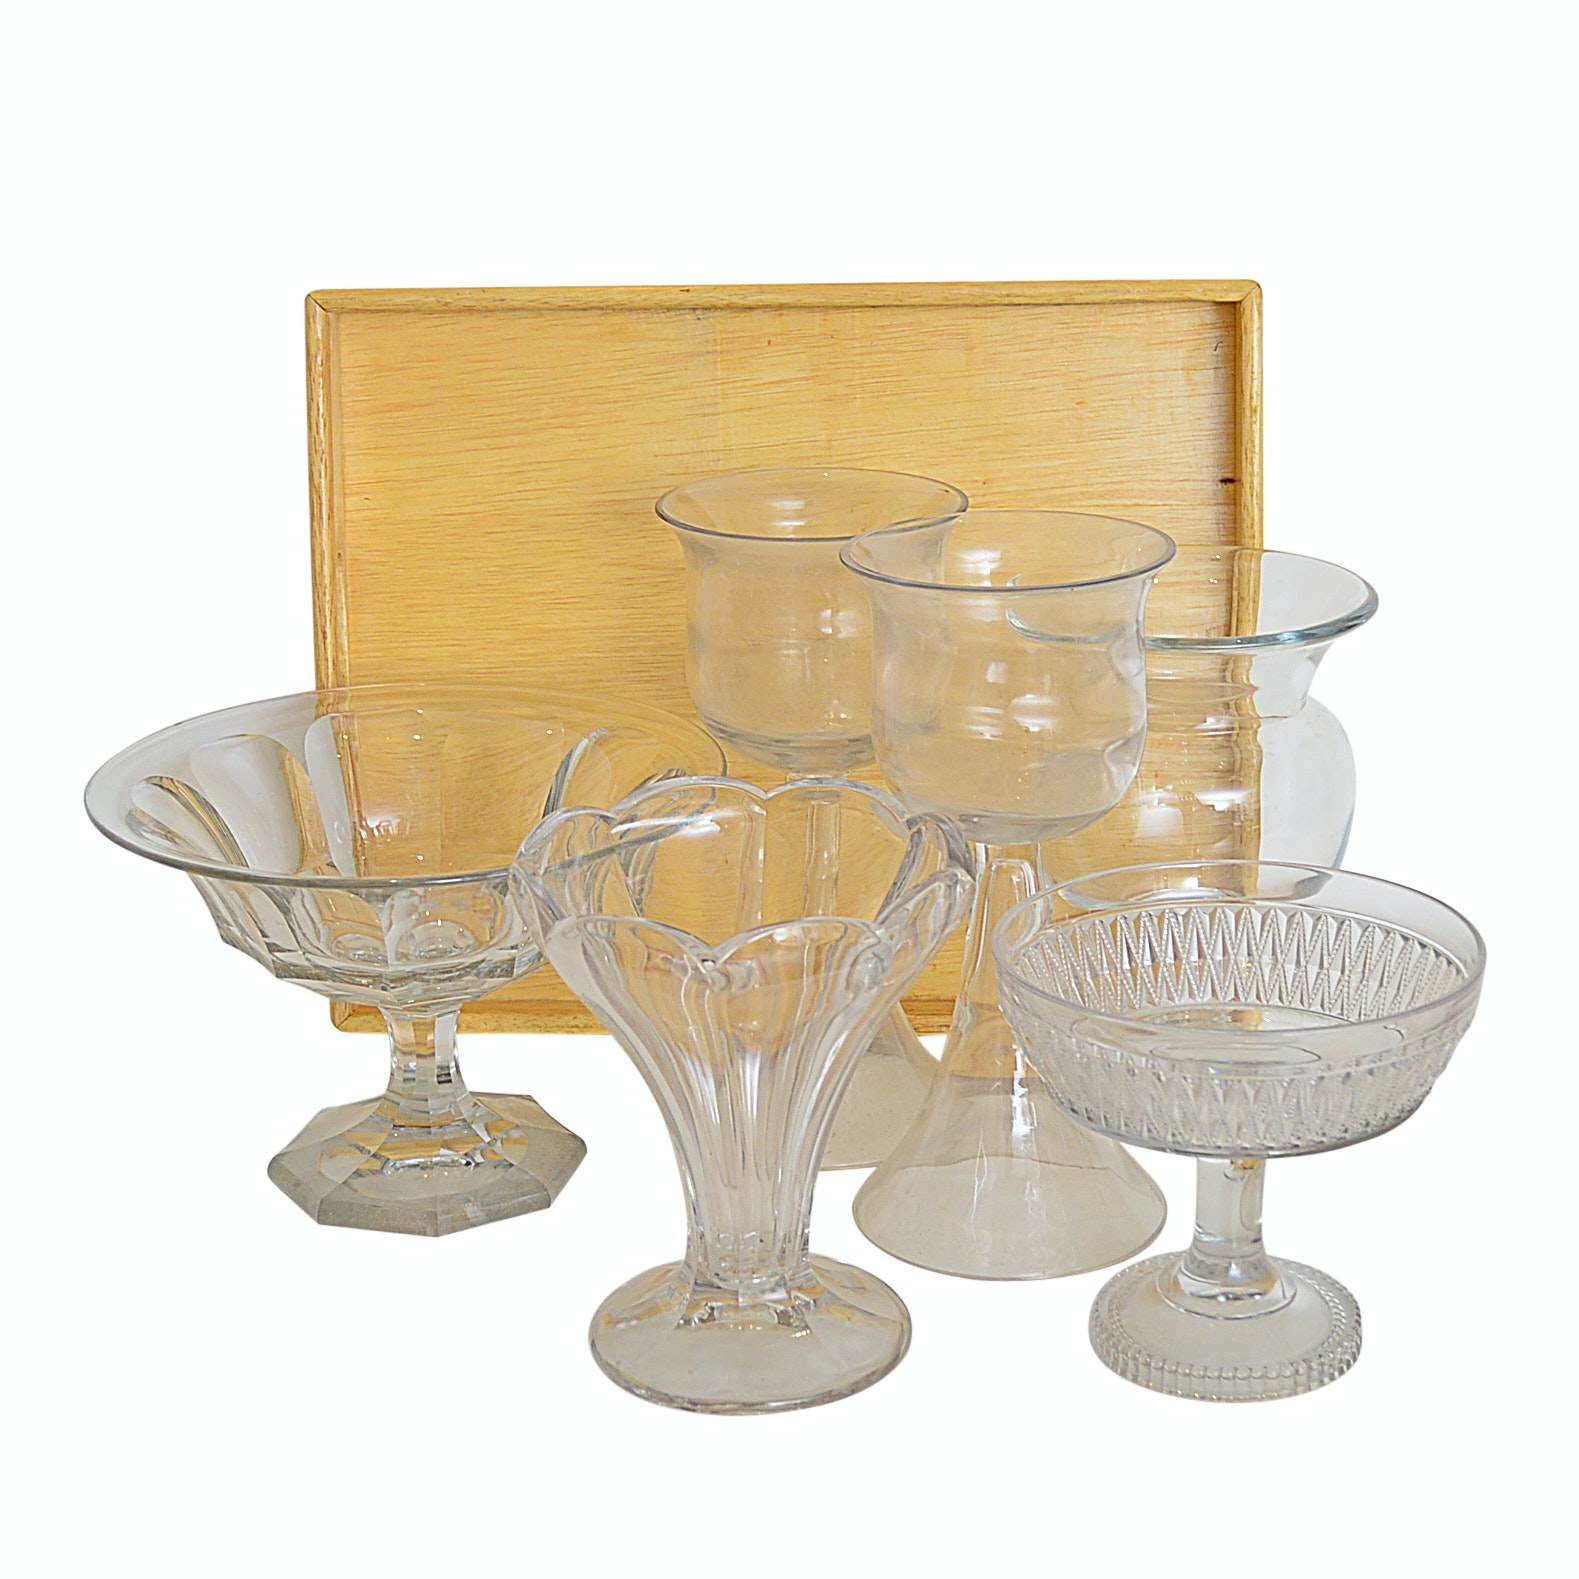 Vintage and Modern Glassware with Dansk Tray